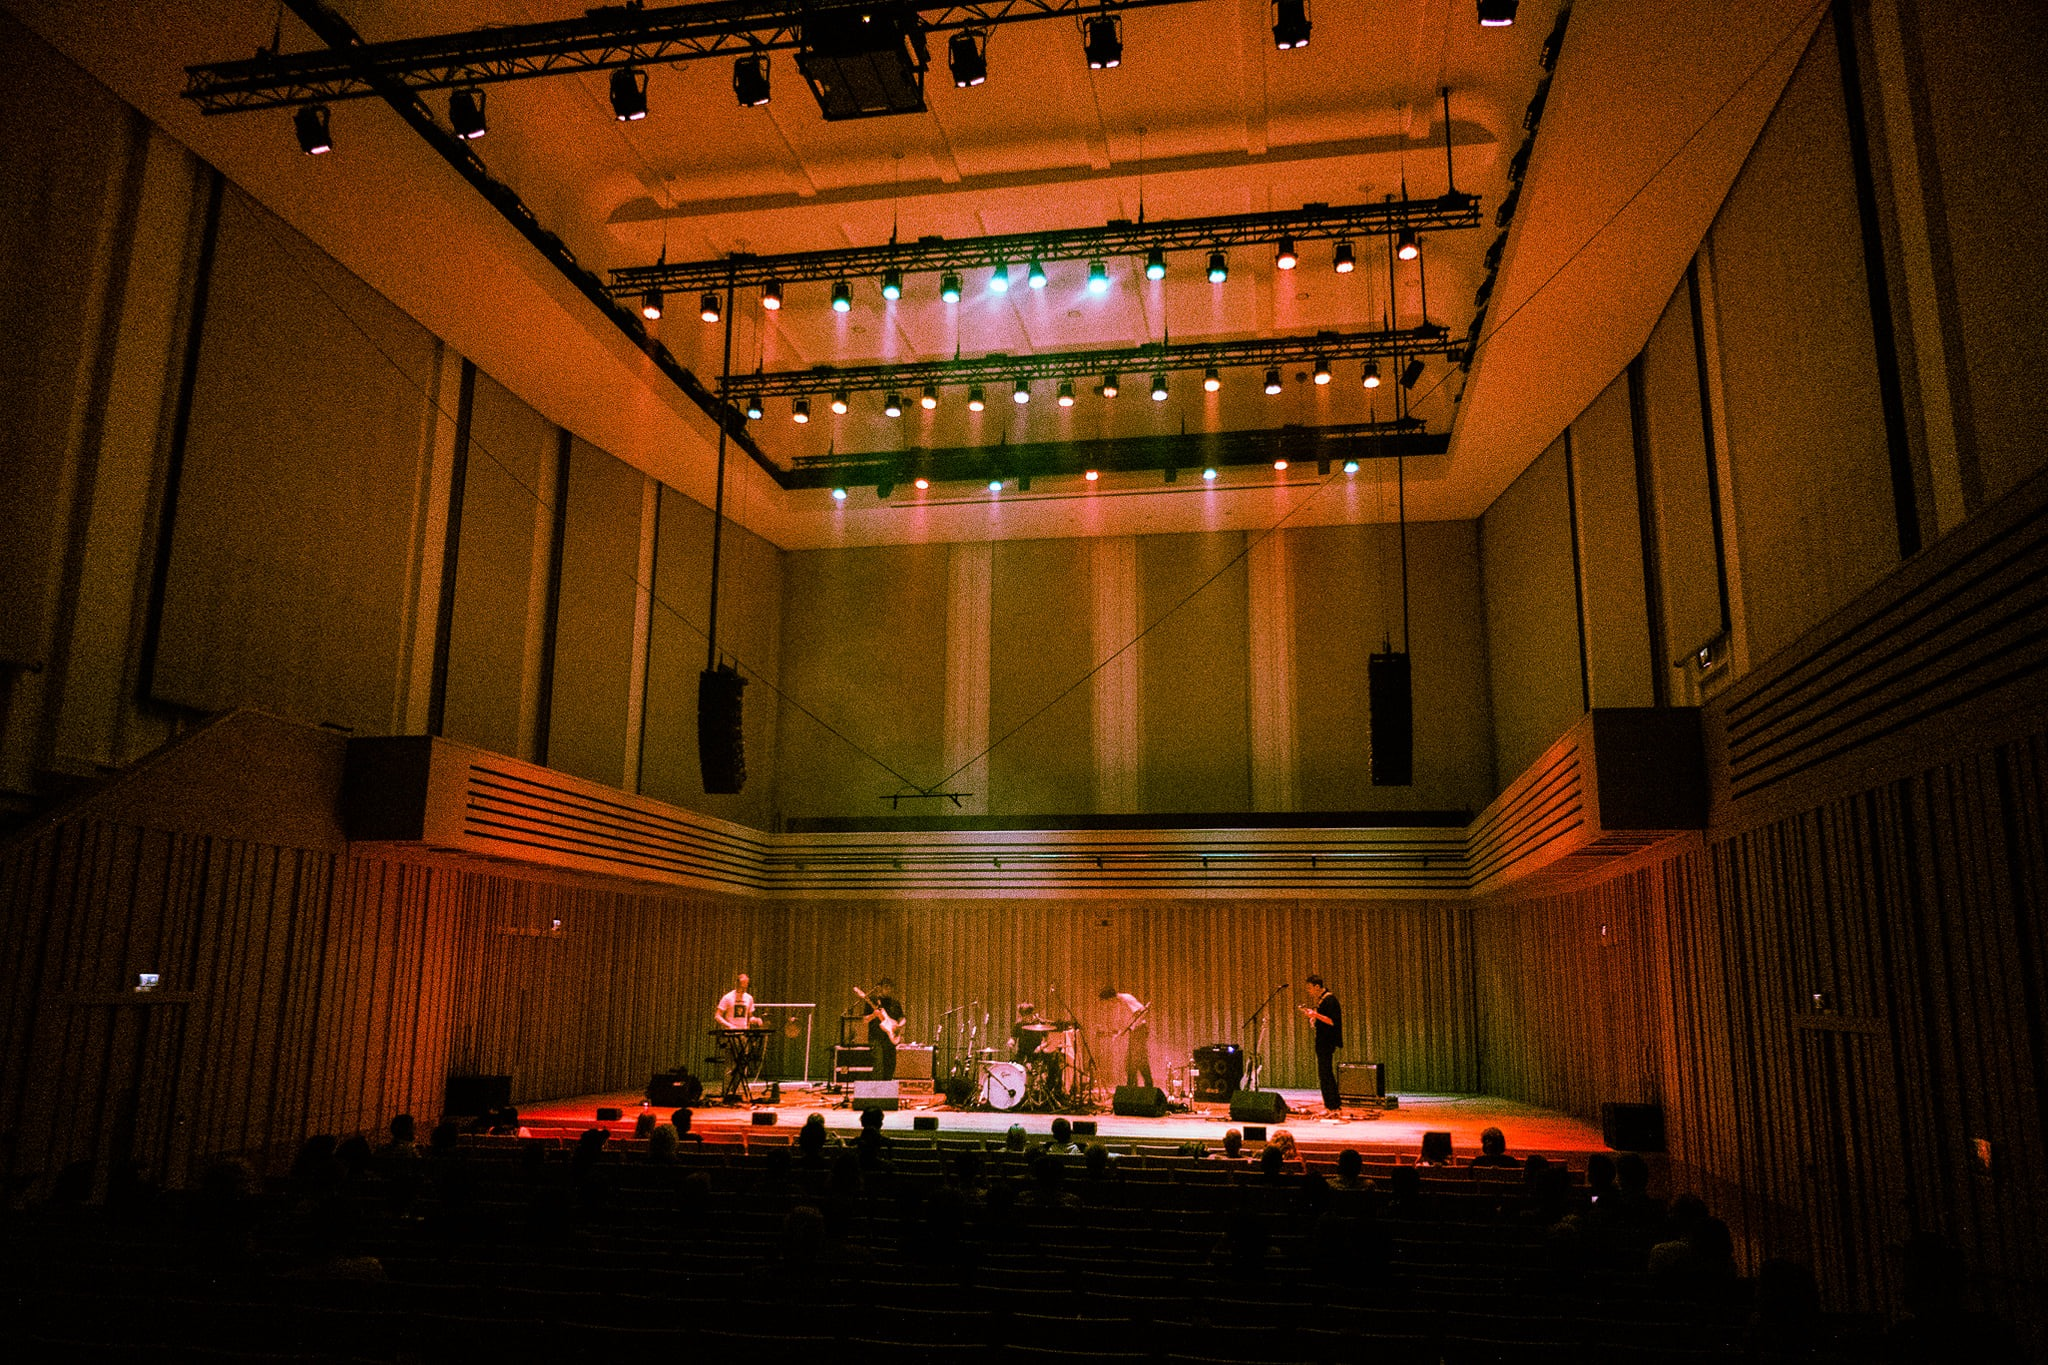 The Stoller Hall Manchester